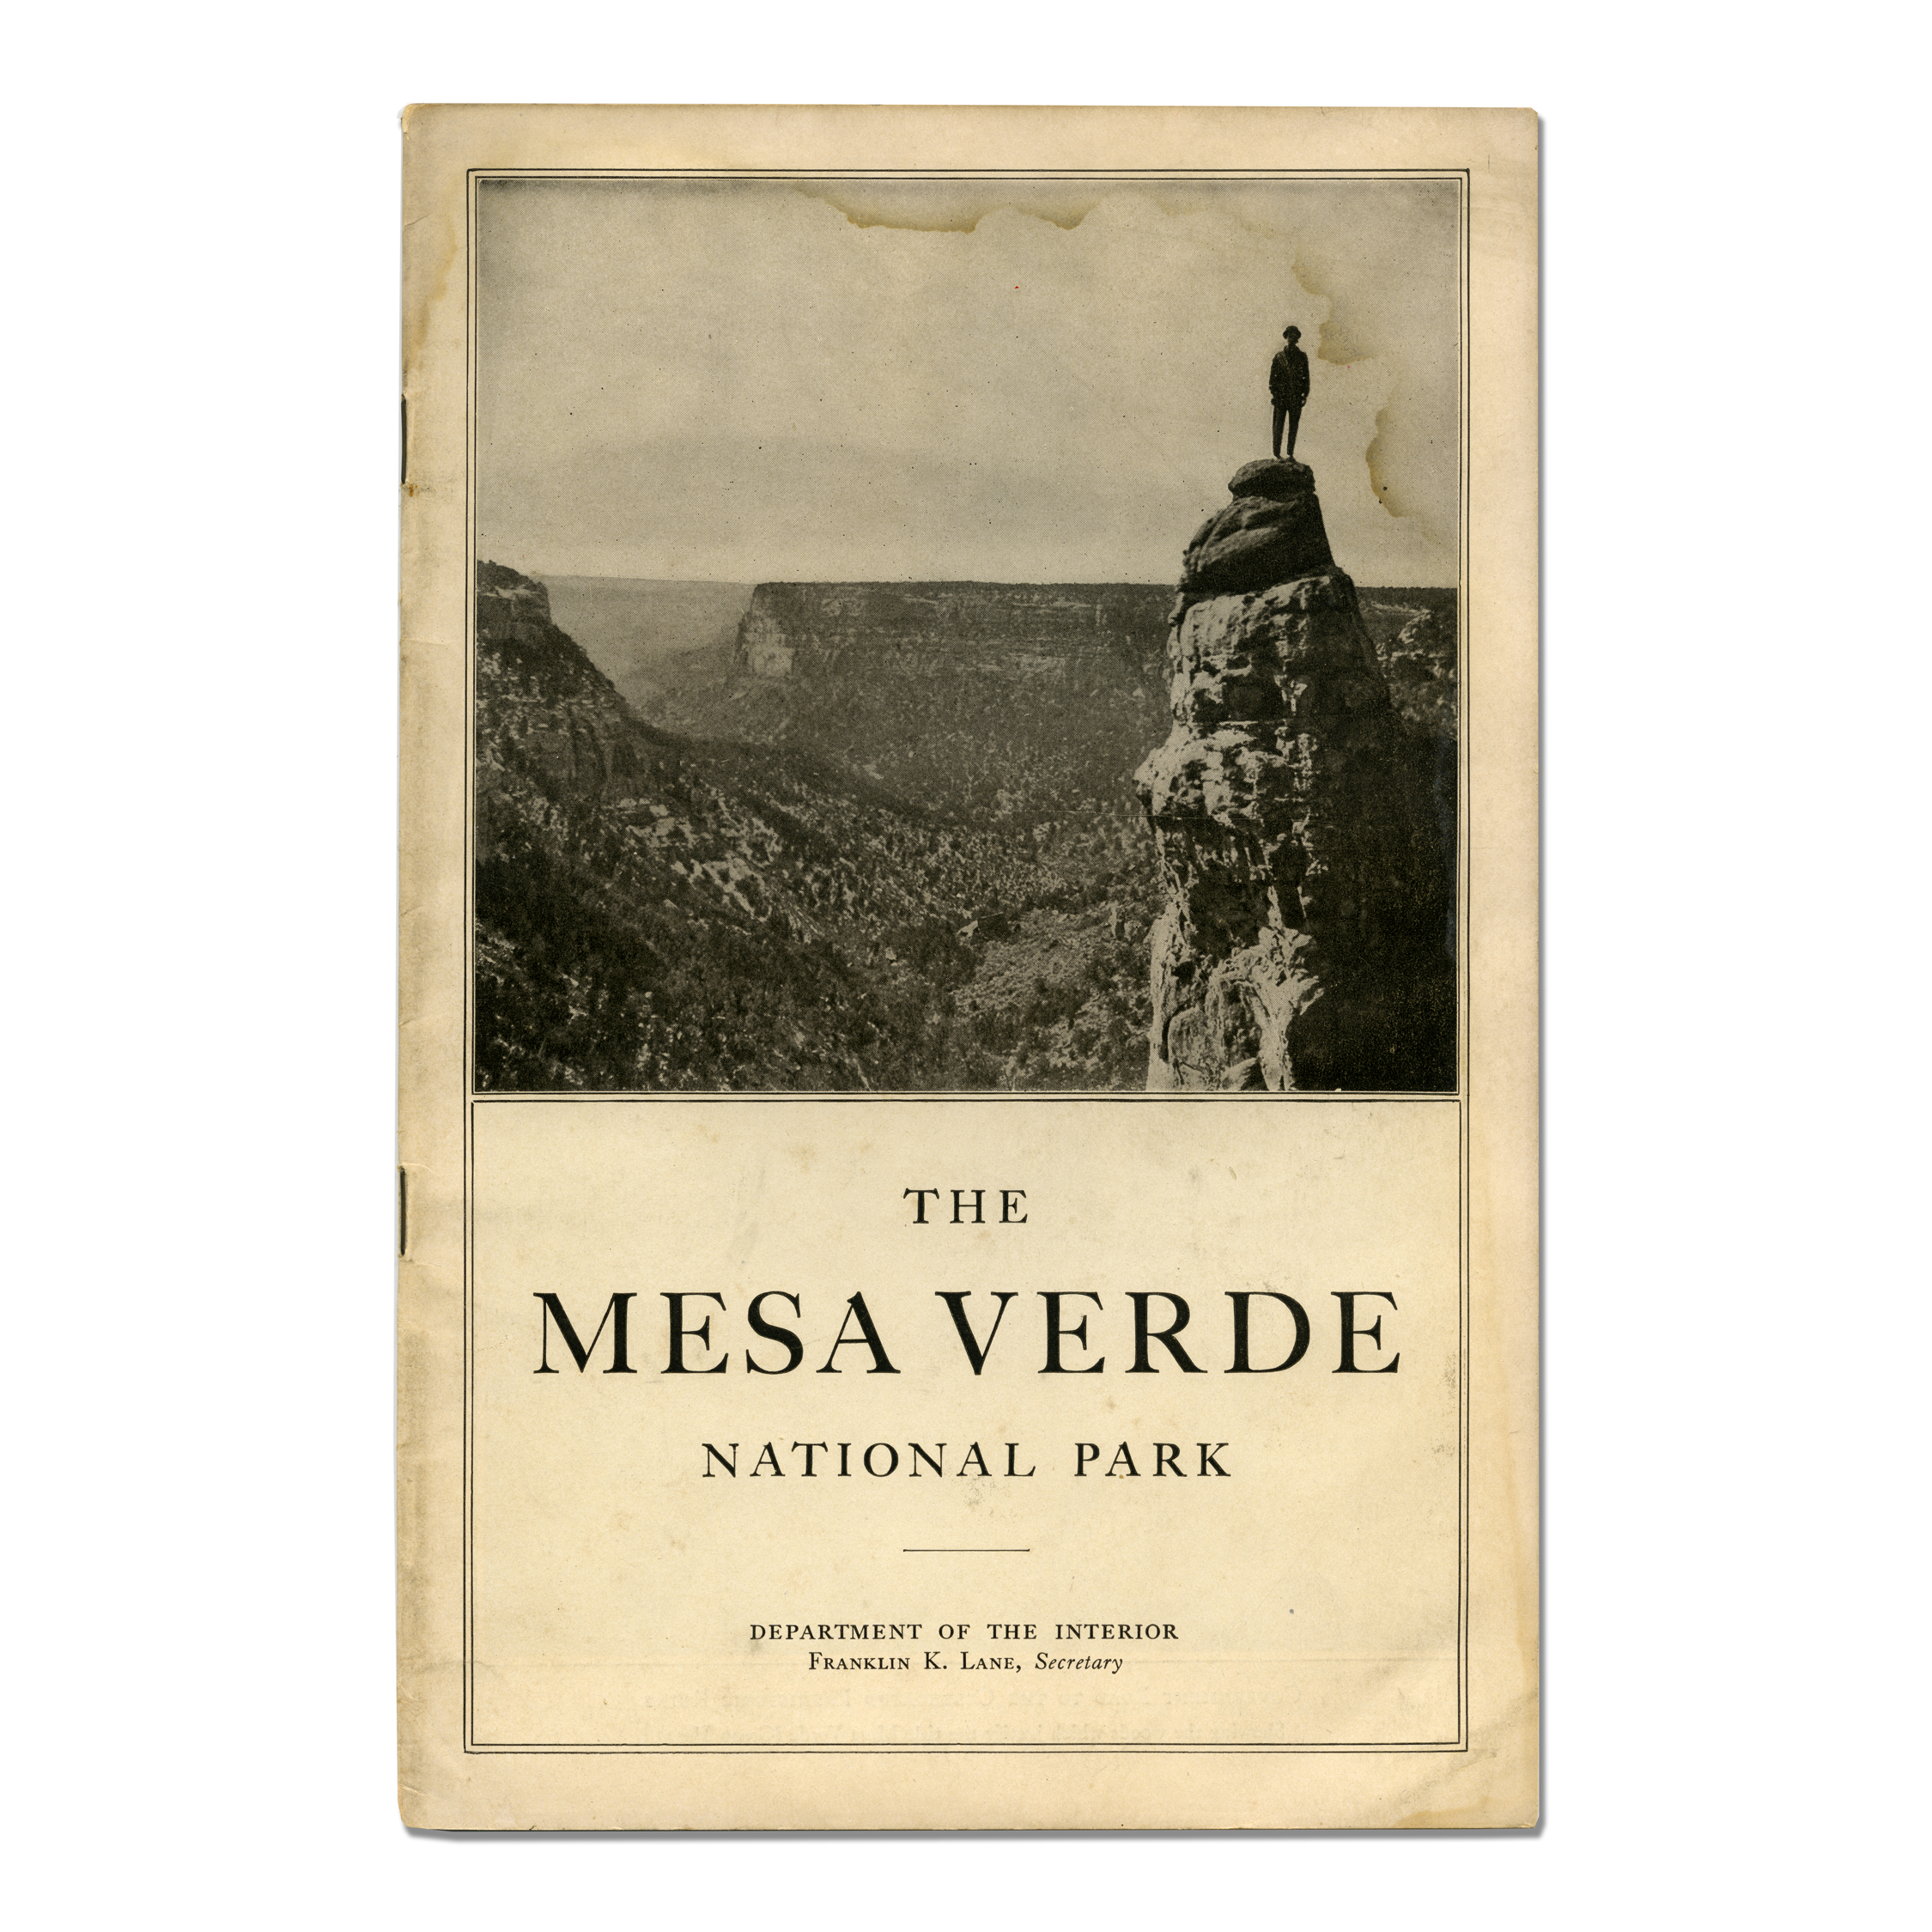 1916_mesa_verde_national_park_department_of_the_interior_portfolio.jpg